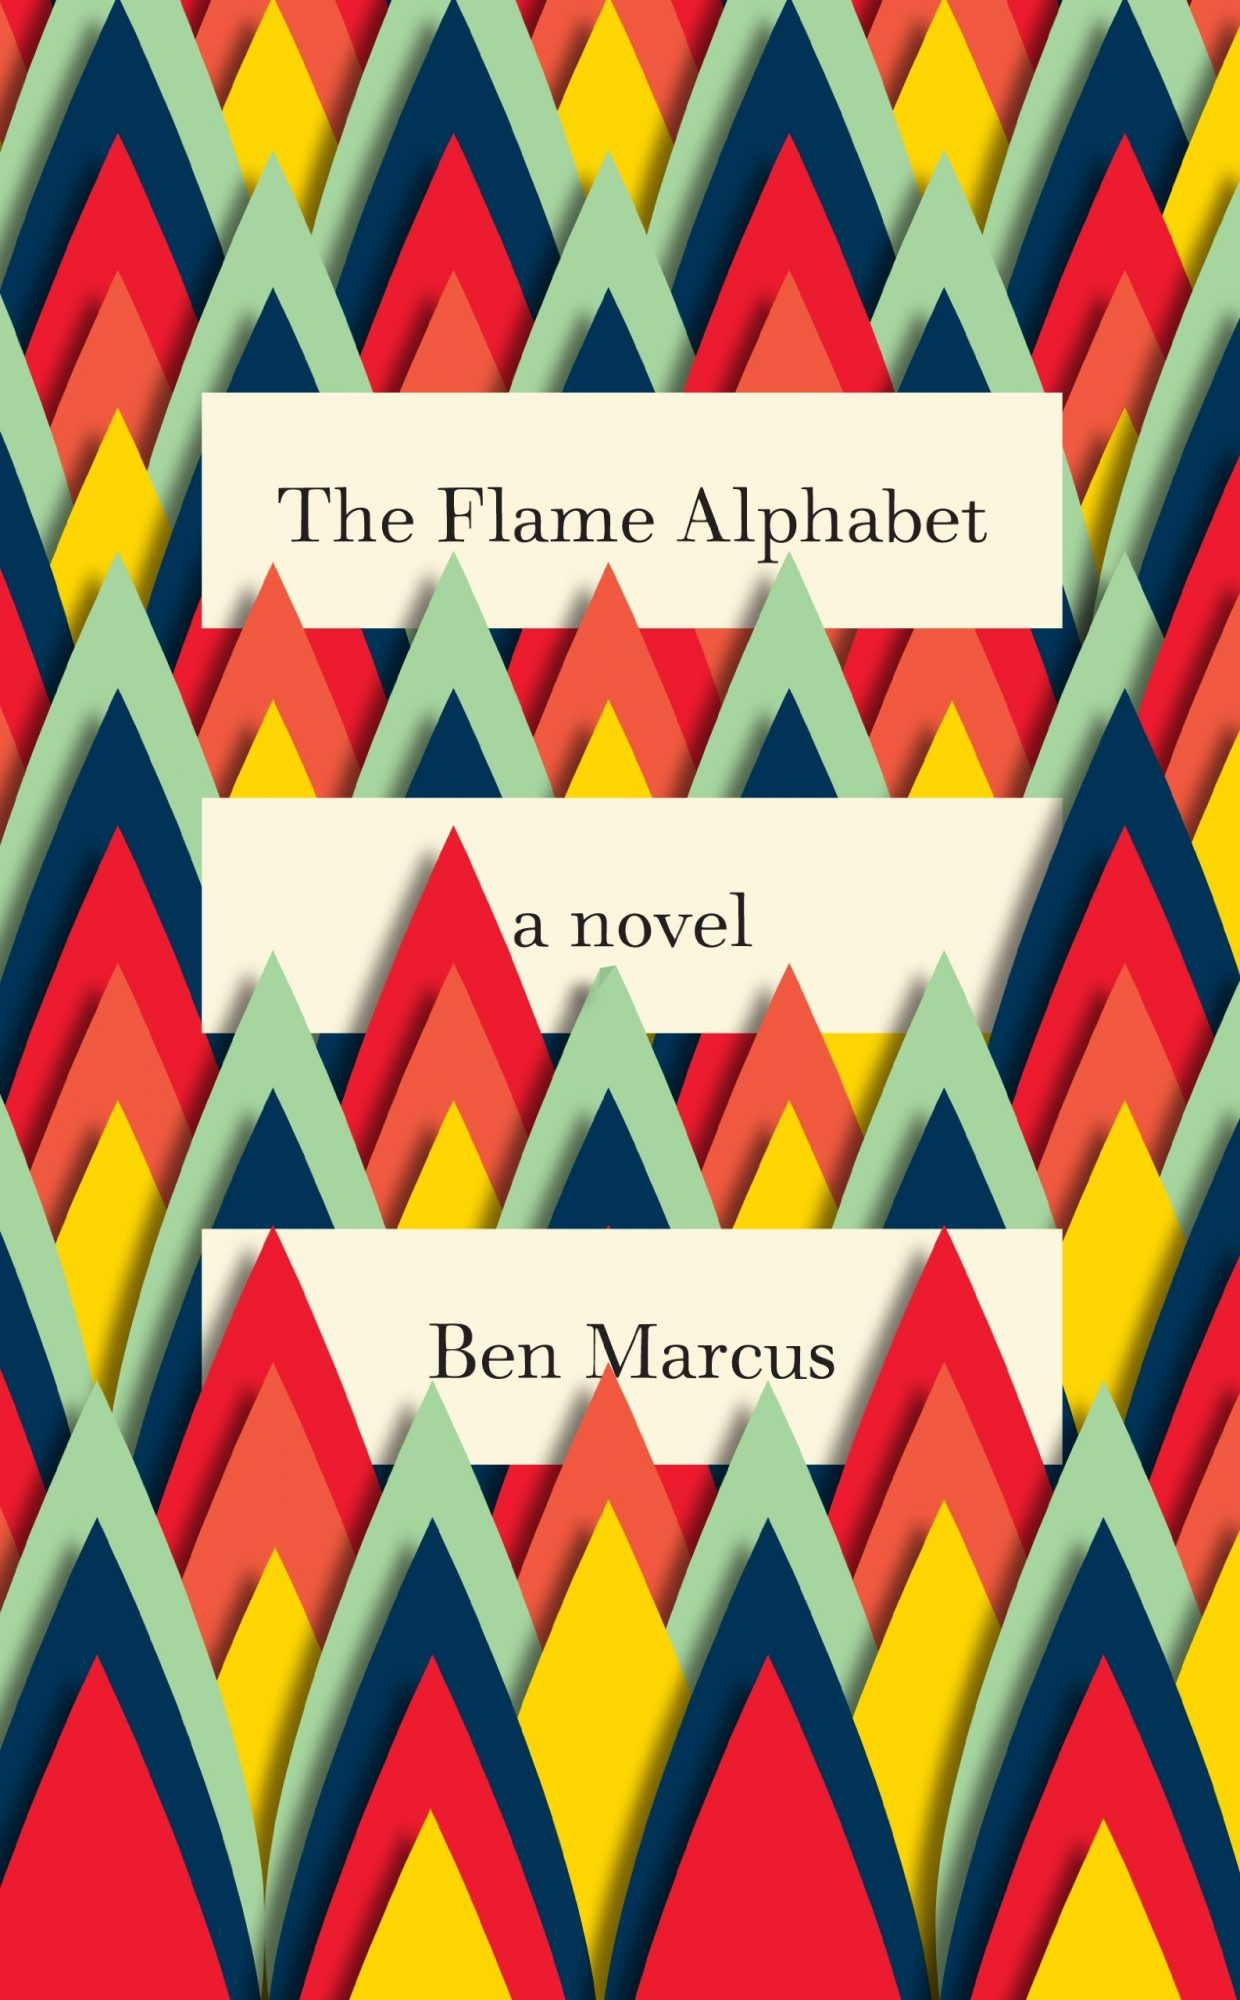 picture-of-the-flame-alphabet-book-photo.jpg